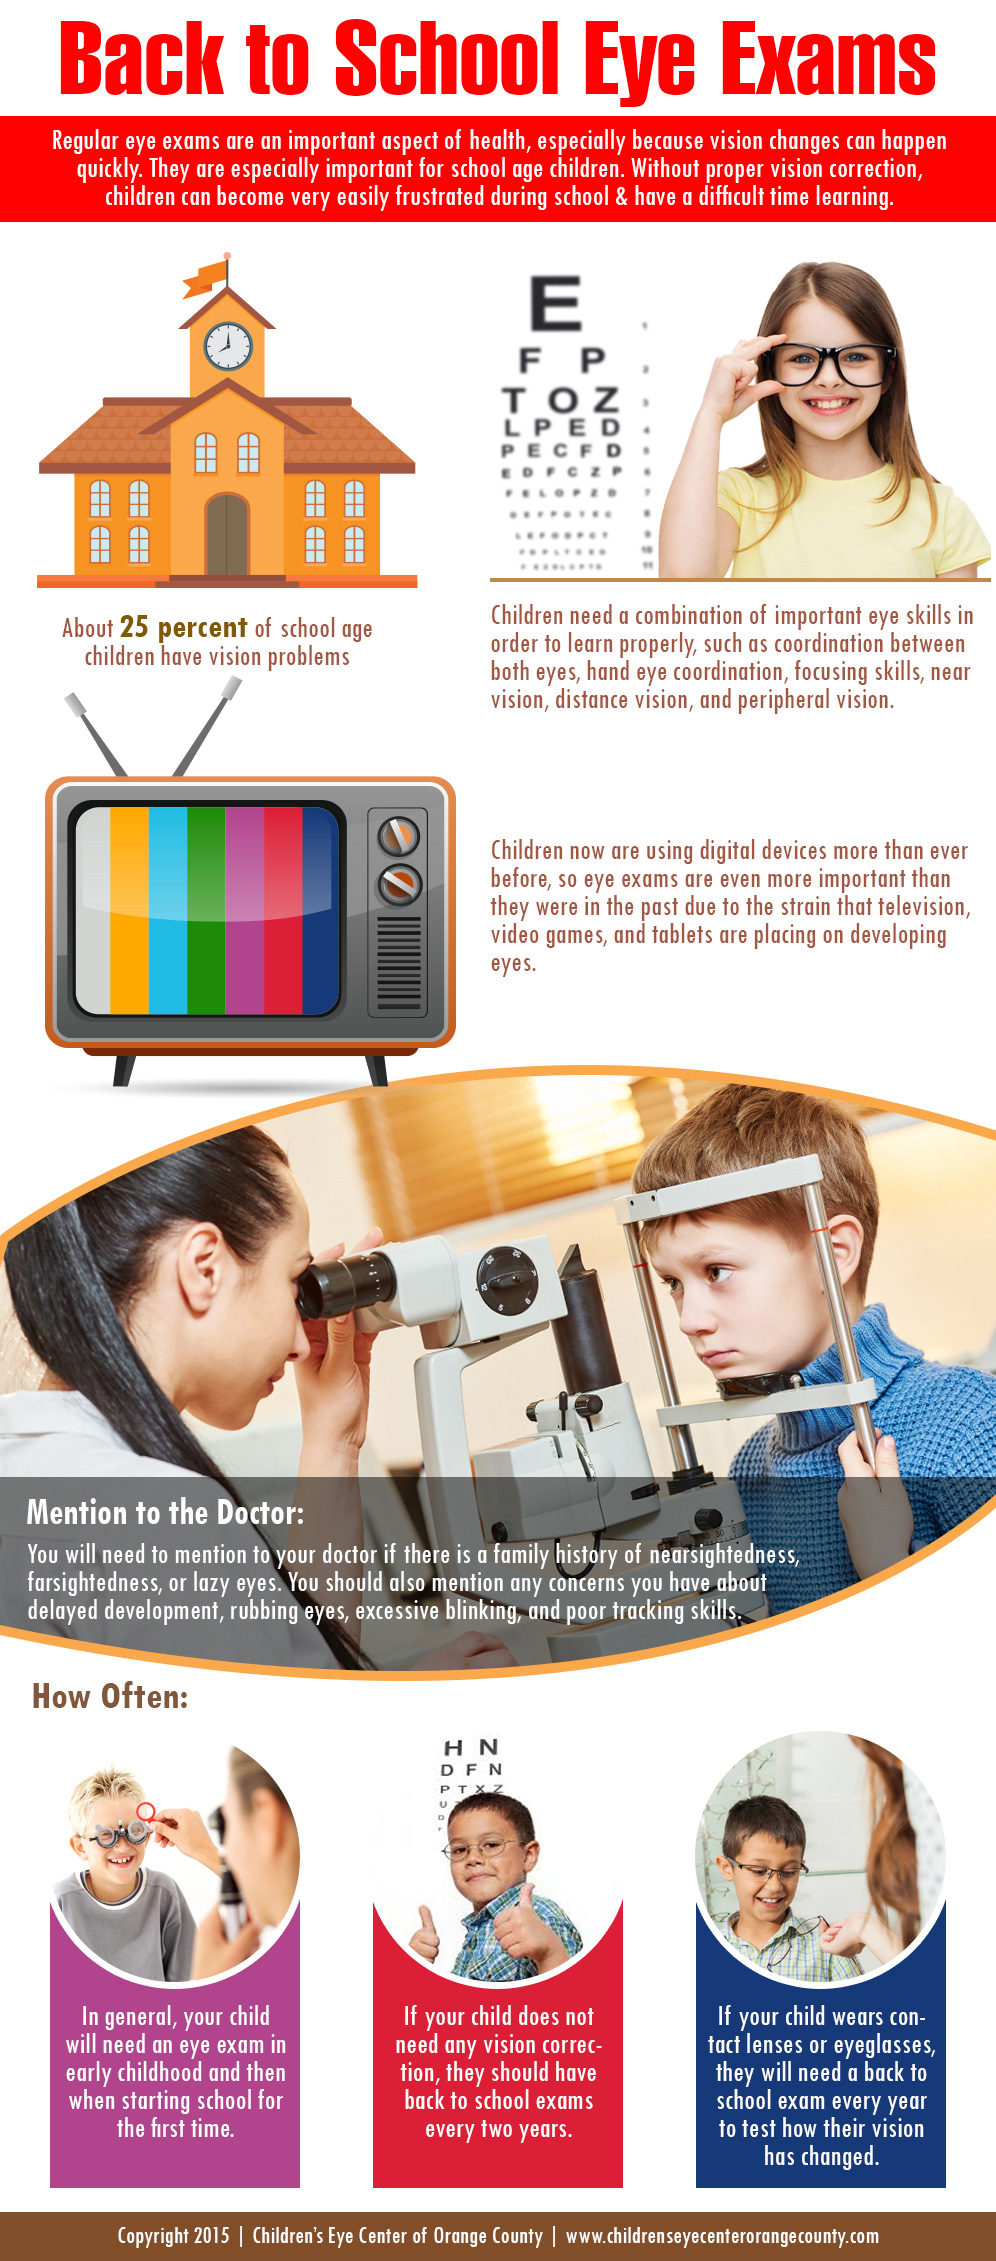 Back-to-School-Eye-Exams-by-Childrens-Eye-Center-of-Orange-County